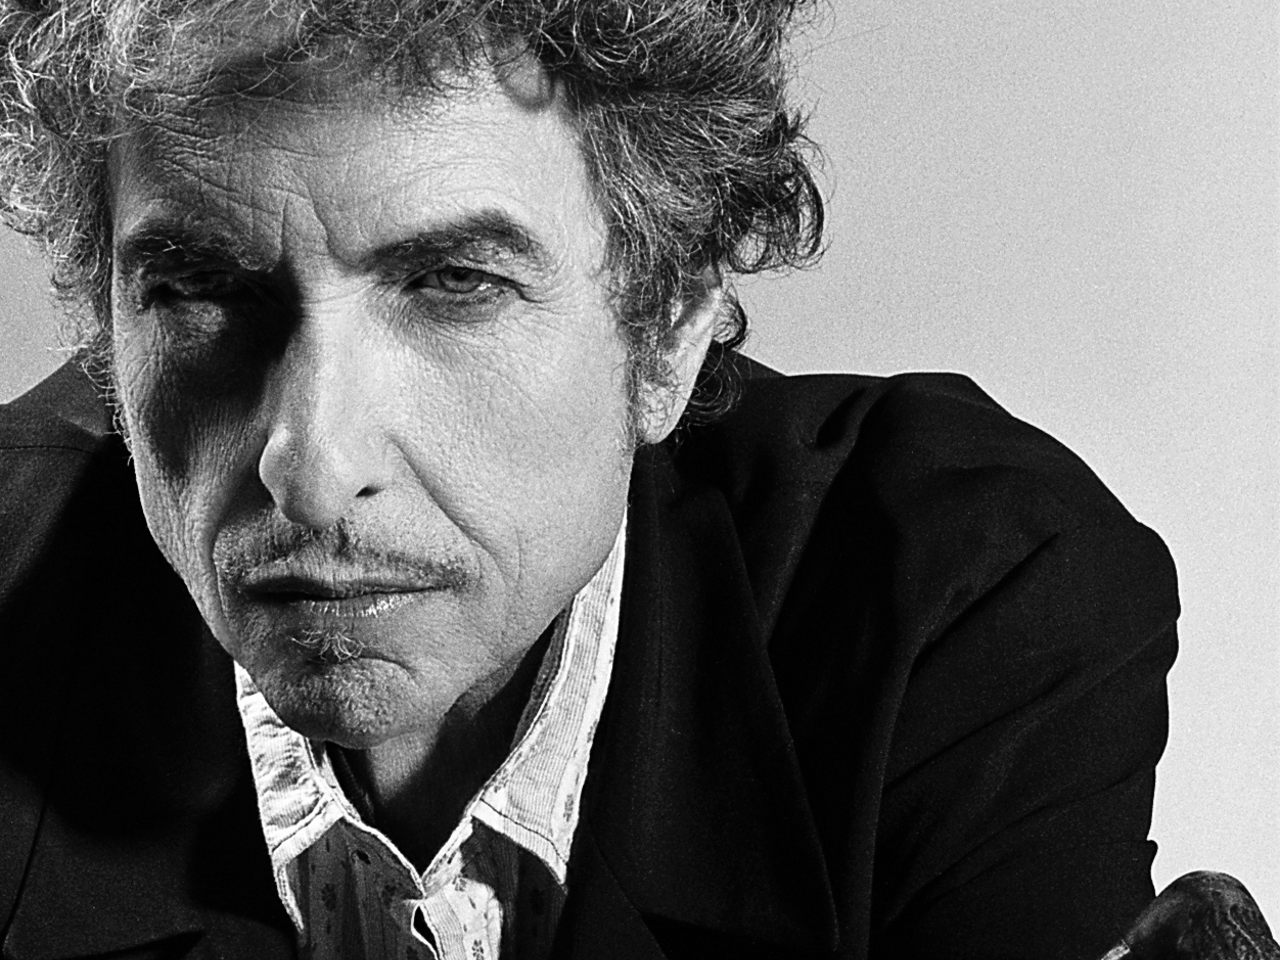 """Bob Dylan Covers Frank Sinatra's Hit """"Stay With Me"""""""